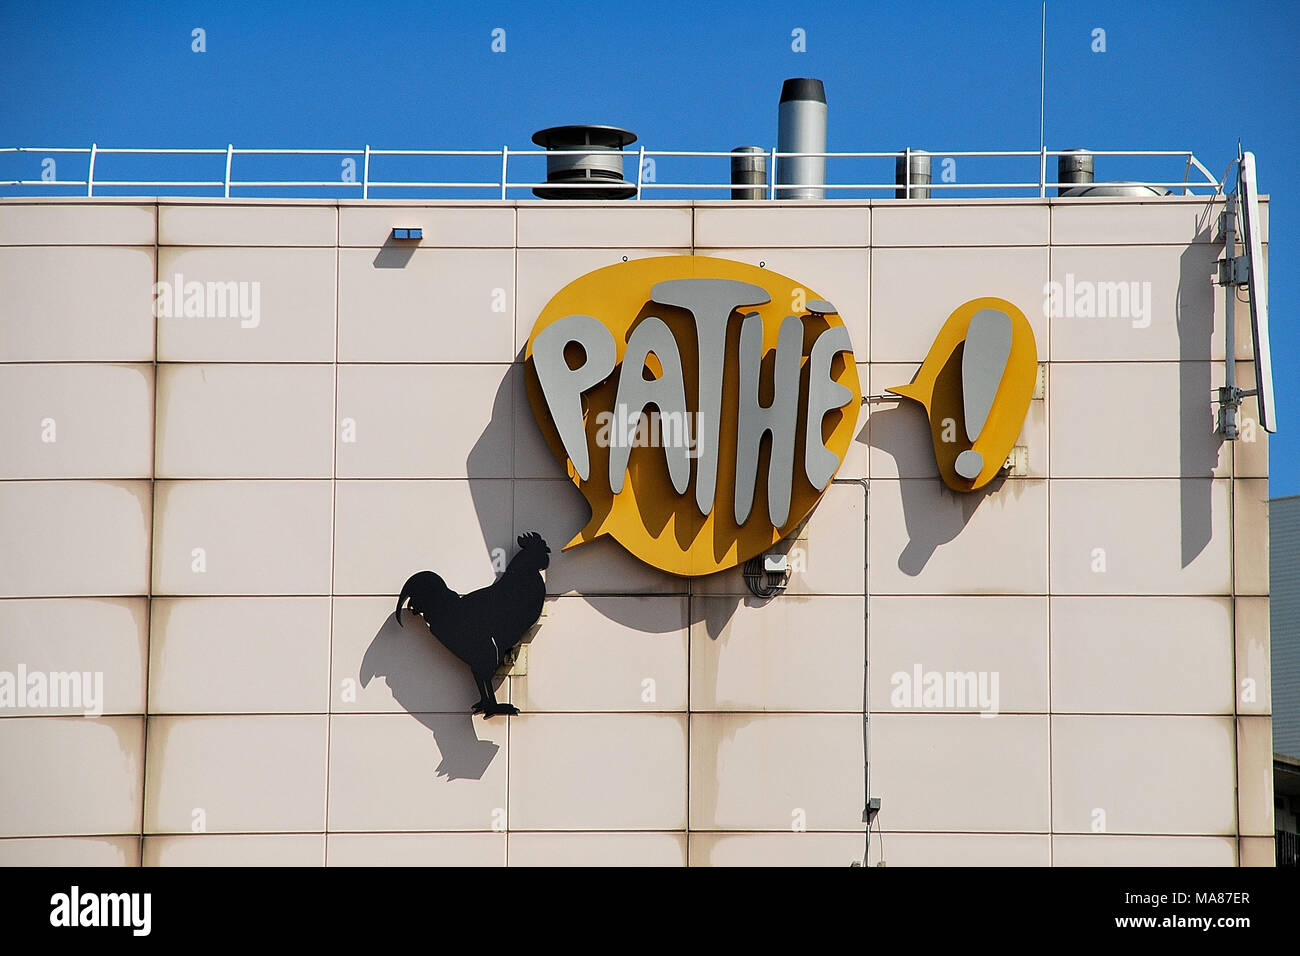 Pathe Logo on the wall, somewhere in Netherlands, Europe - Stock Image